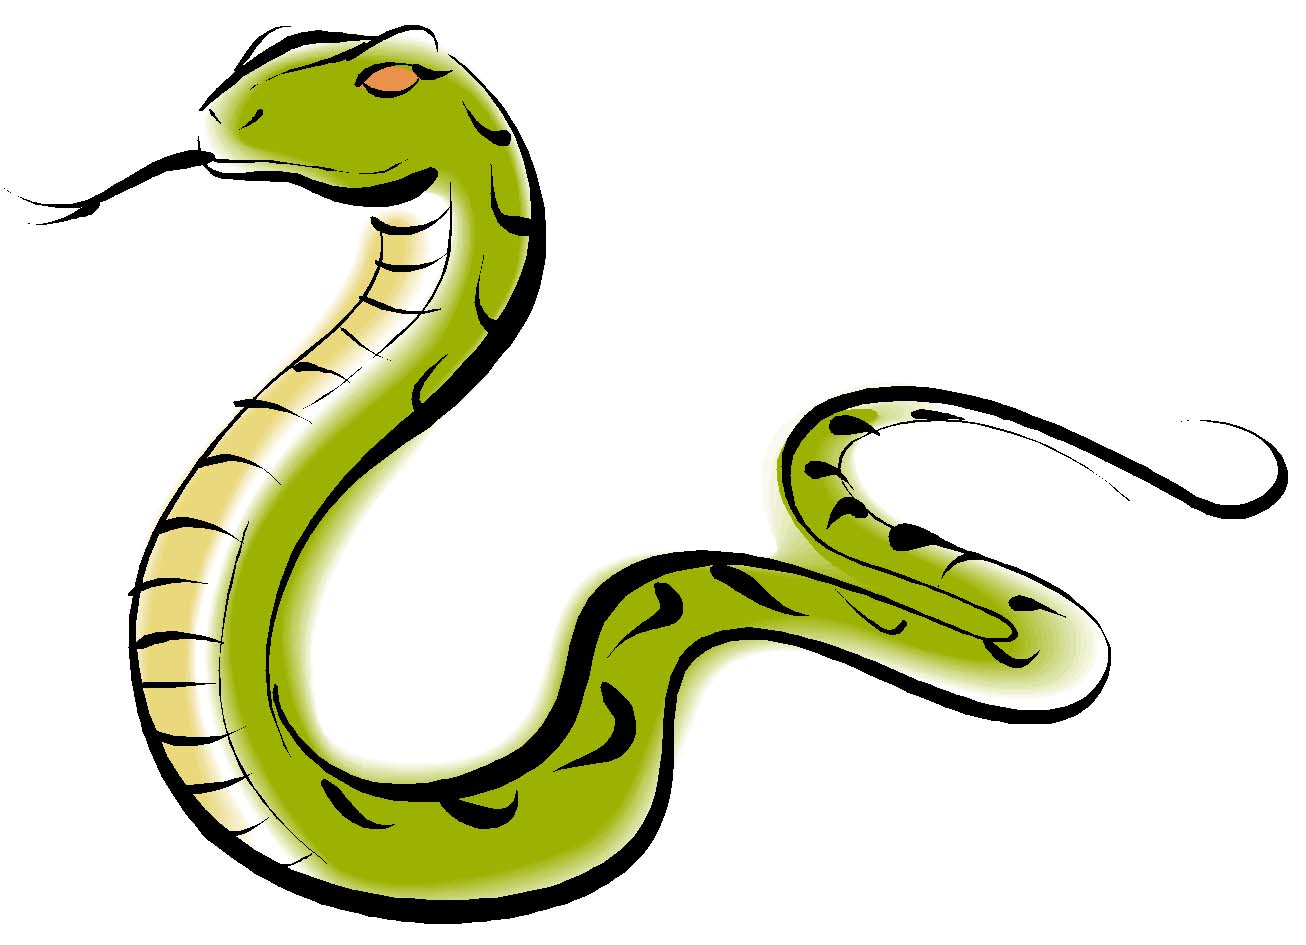 Rattle Snake Clip Art | Clipart library -Rattle Snake Clip Art | Clipart library - Free Clipart Images-4